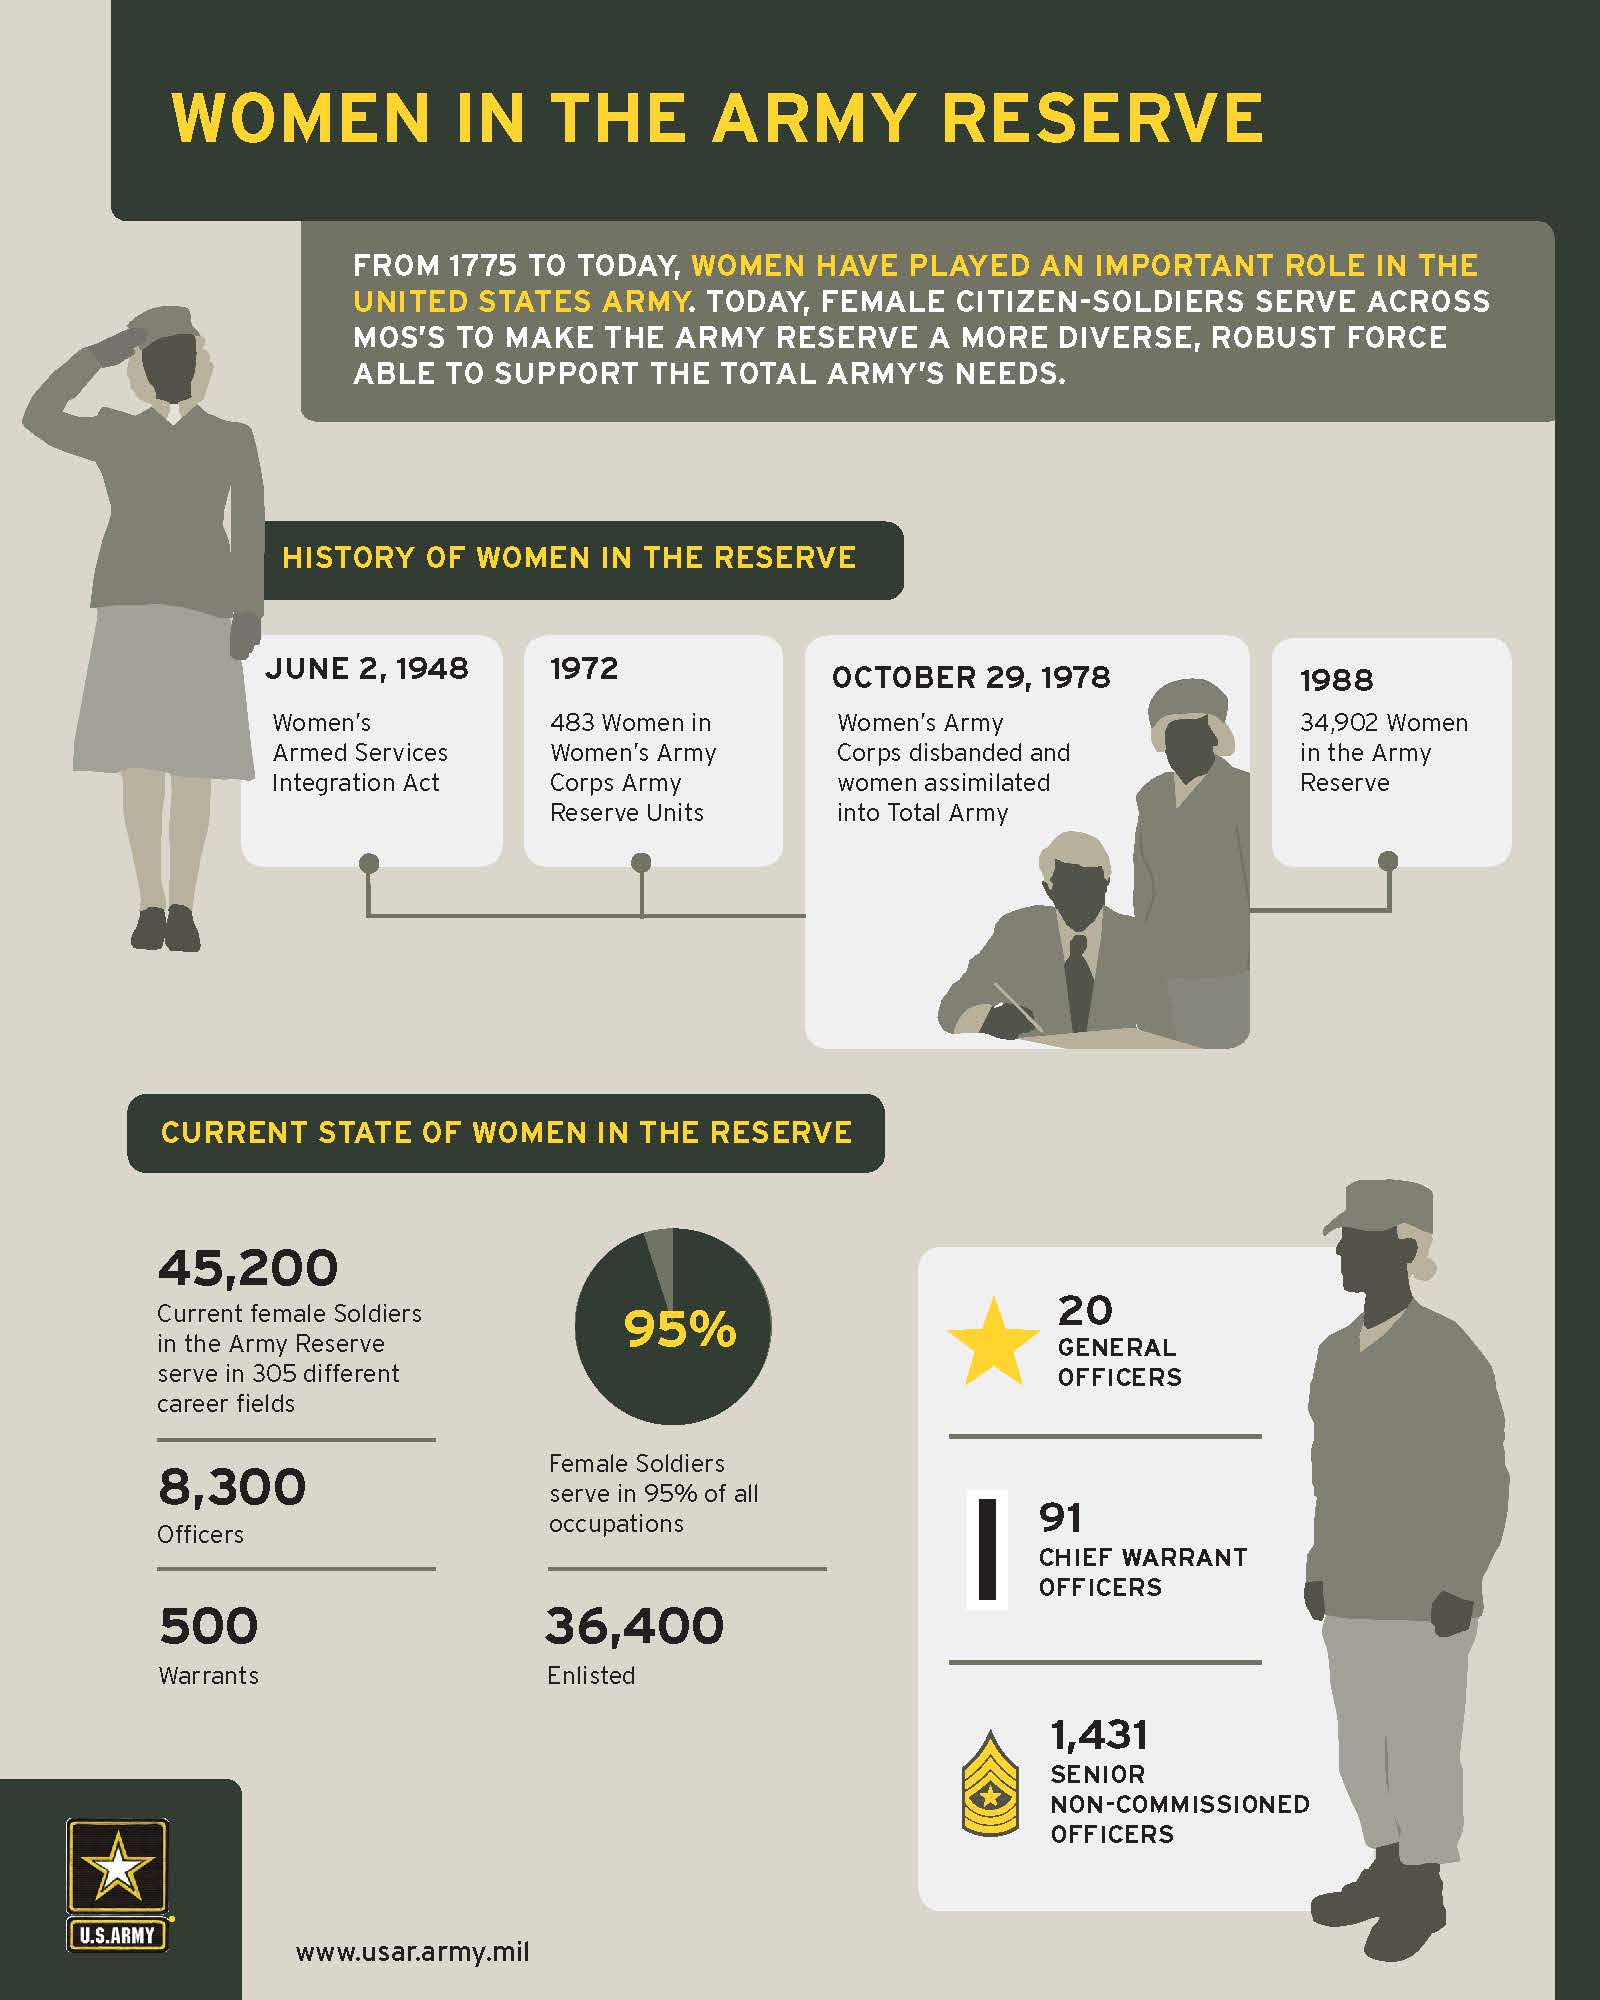 Women in the Army Reserve